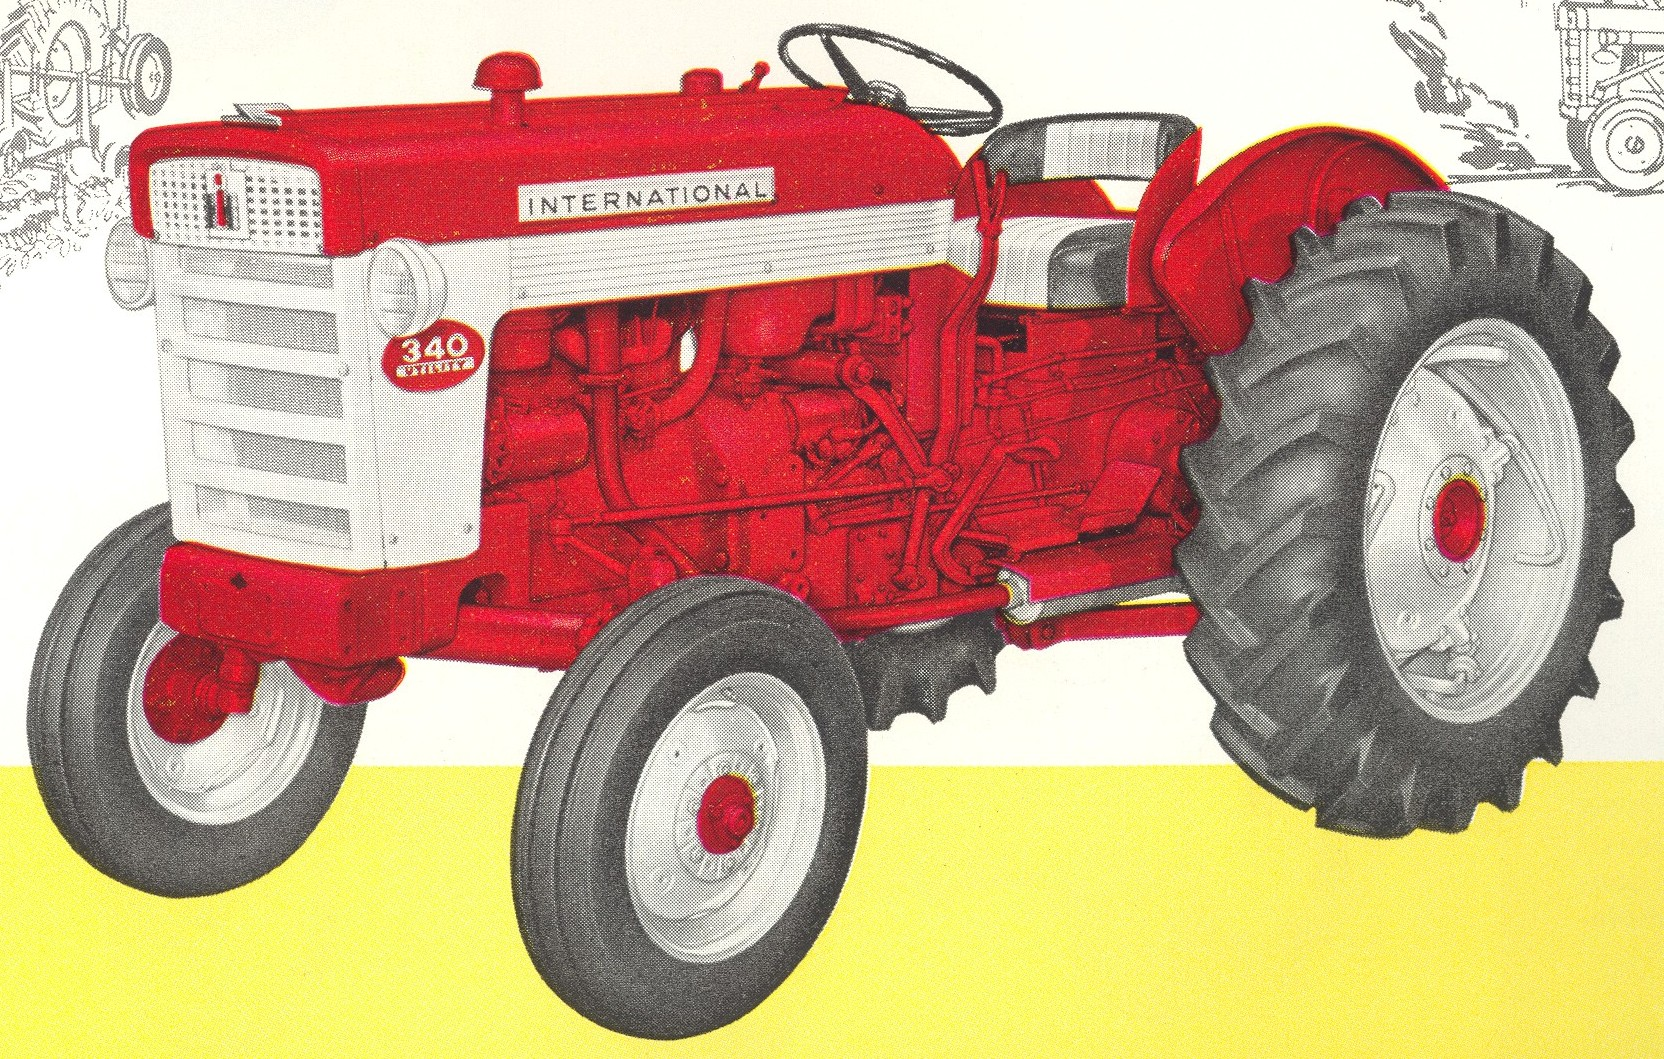 Ih 340 Utility Tractor Parts : International tractor construction plant wiki